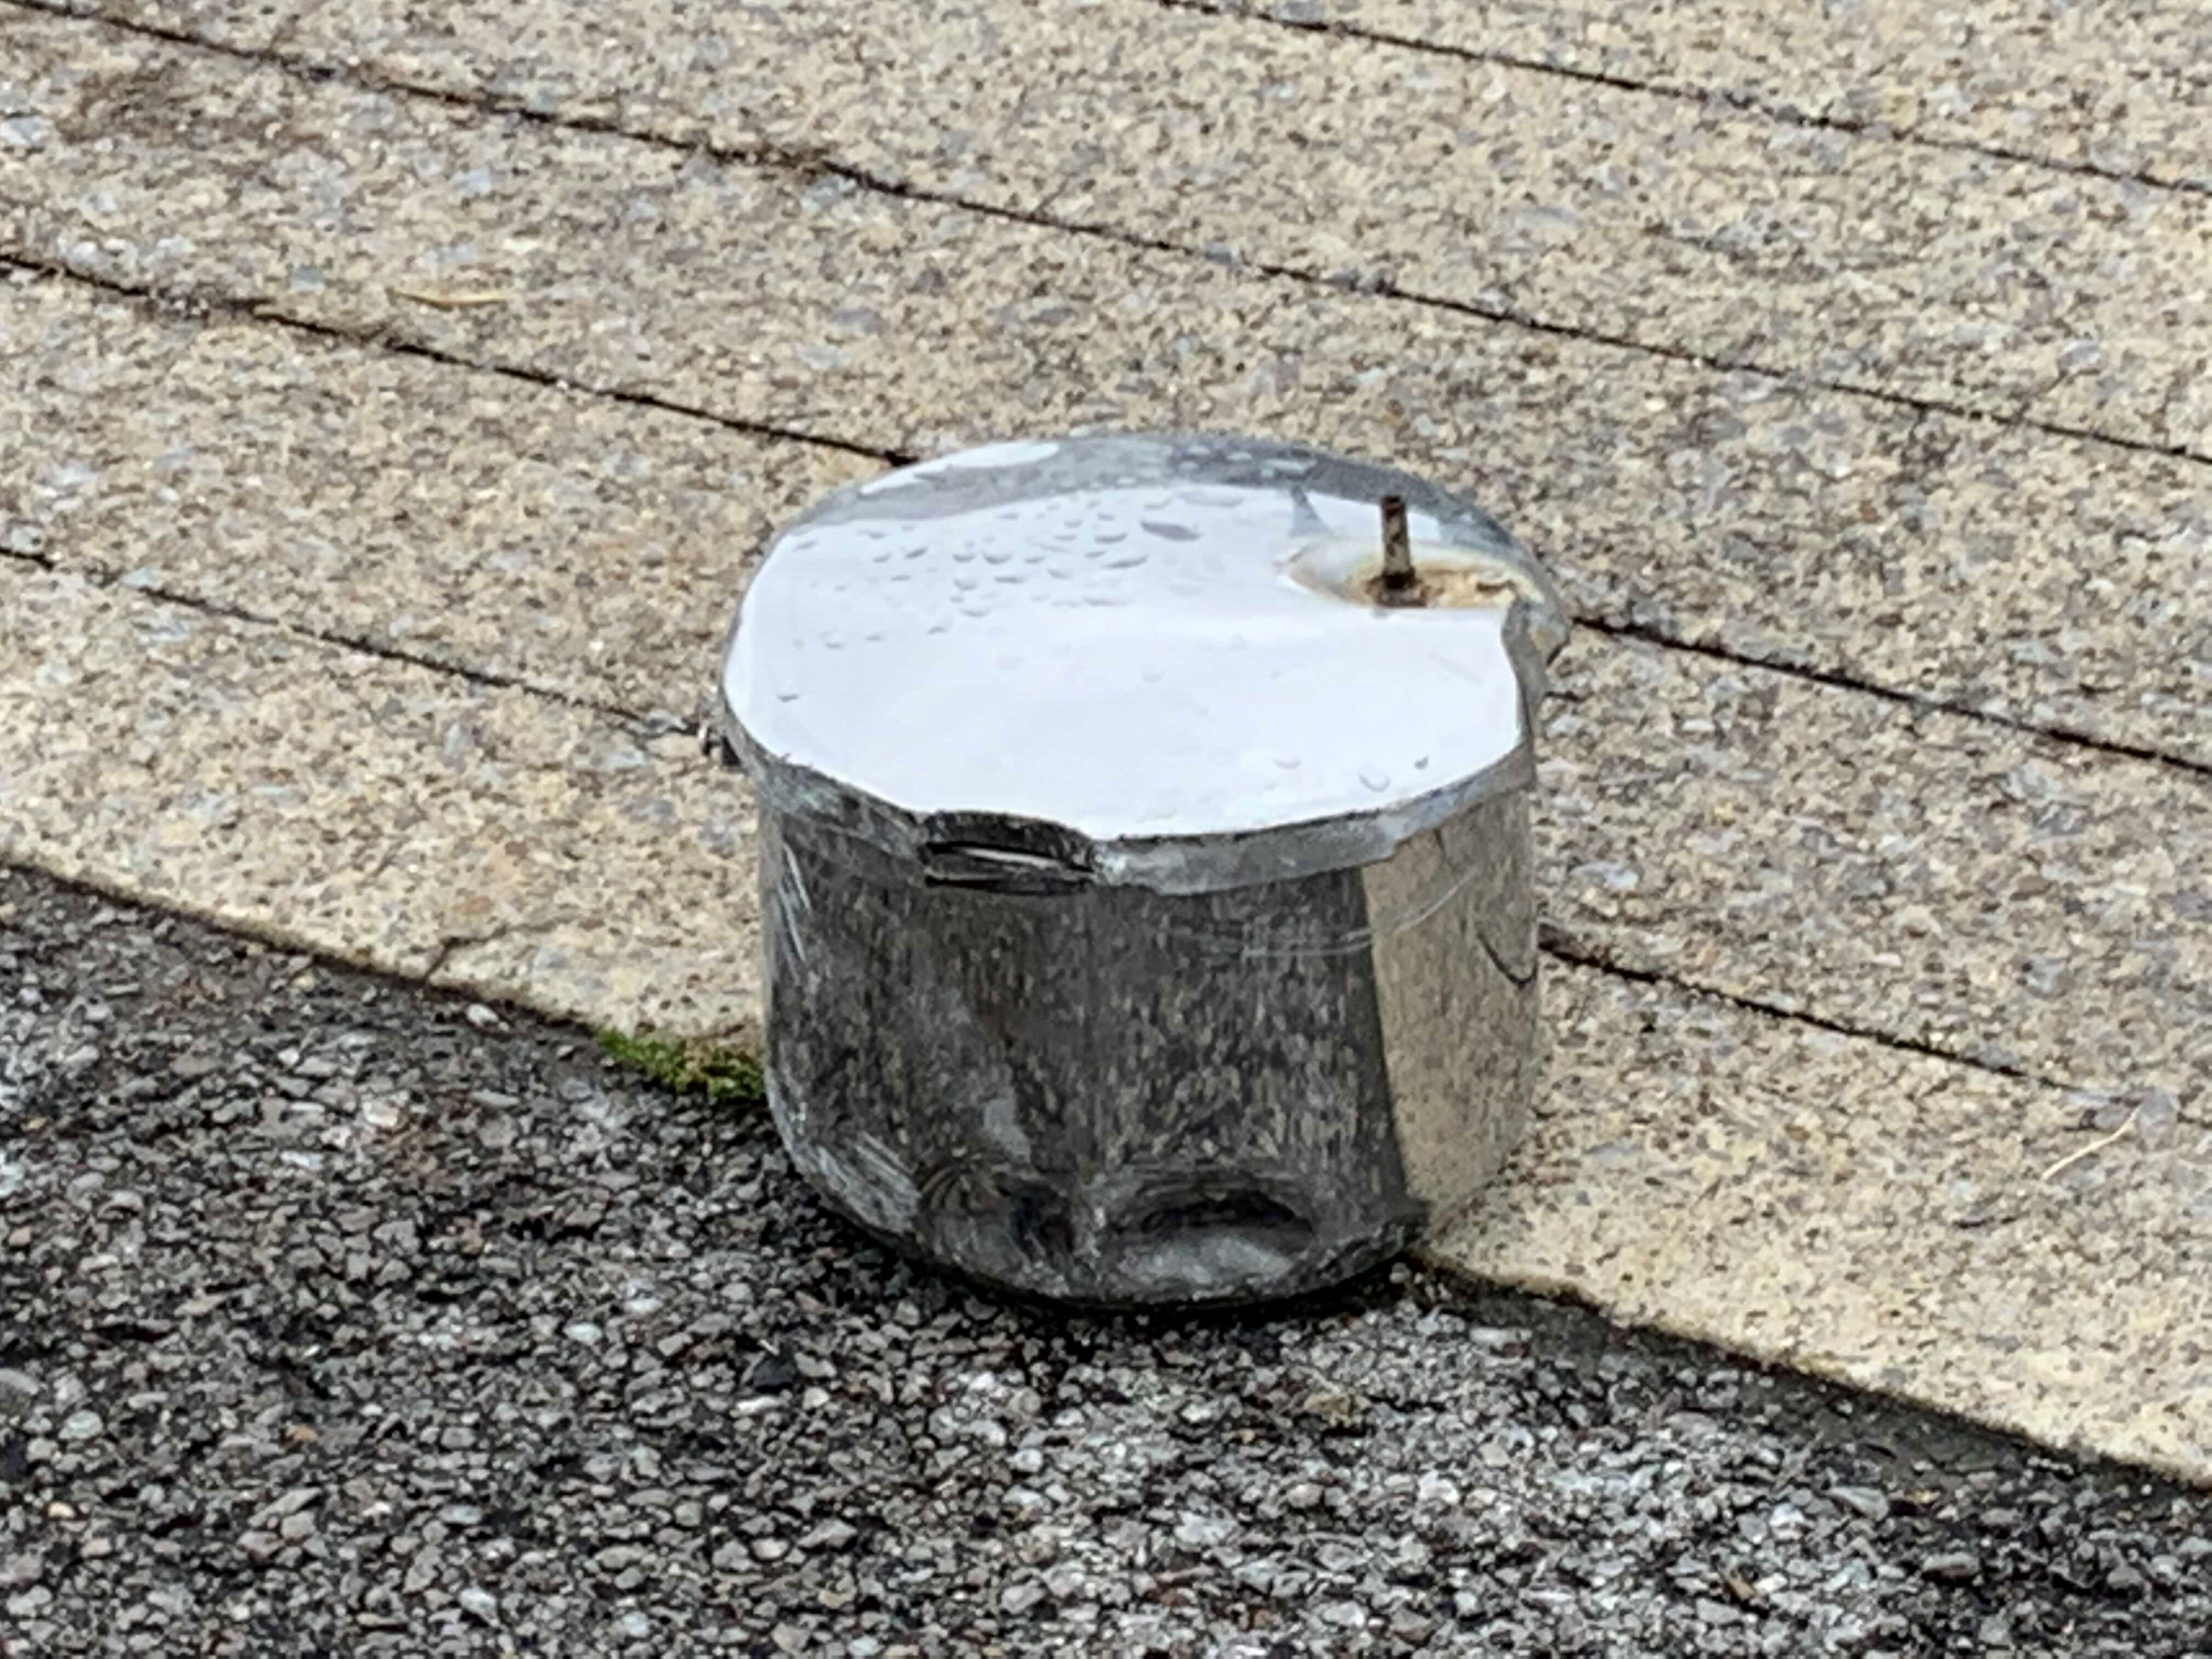 A pressure cooker was found at the entrance of Cason Lane Academy which caused a scare Friday afternoon, May 8.